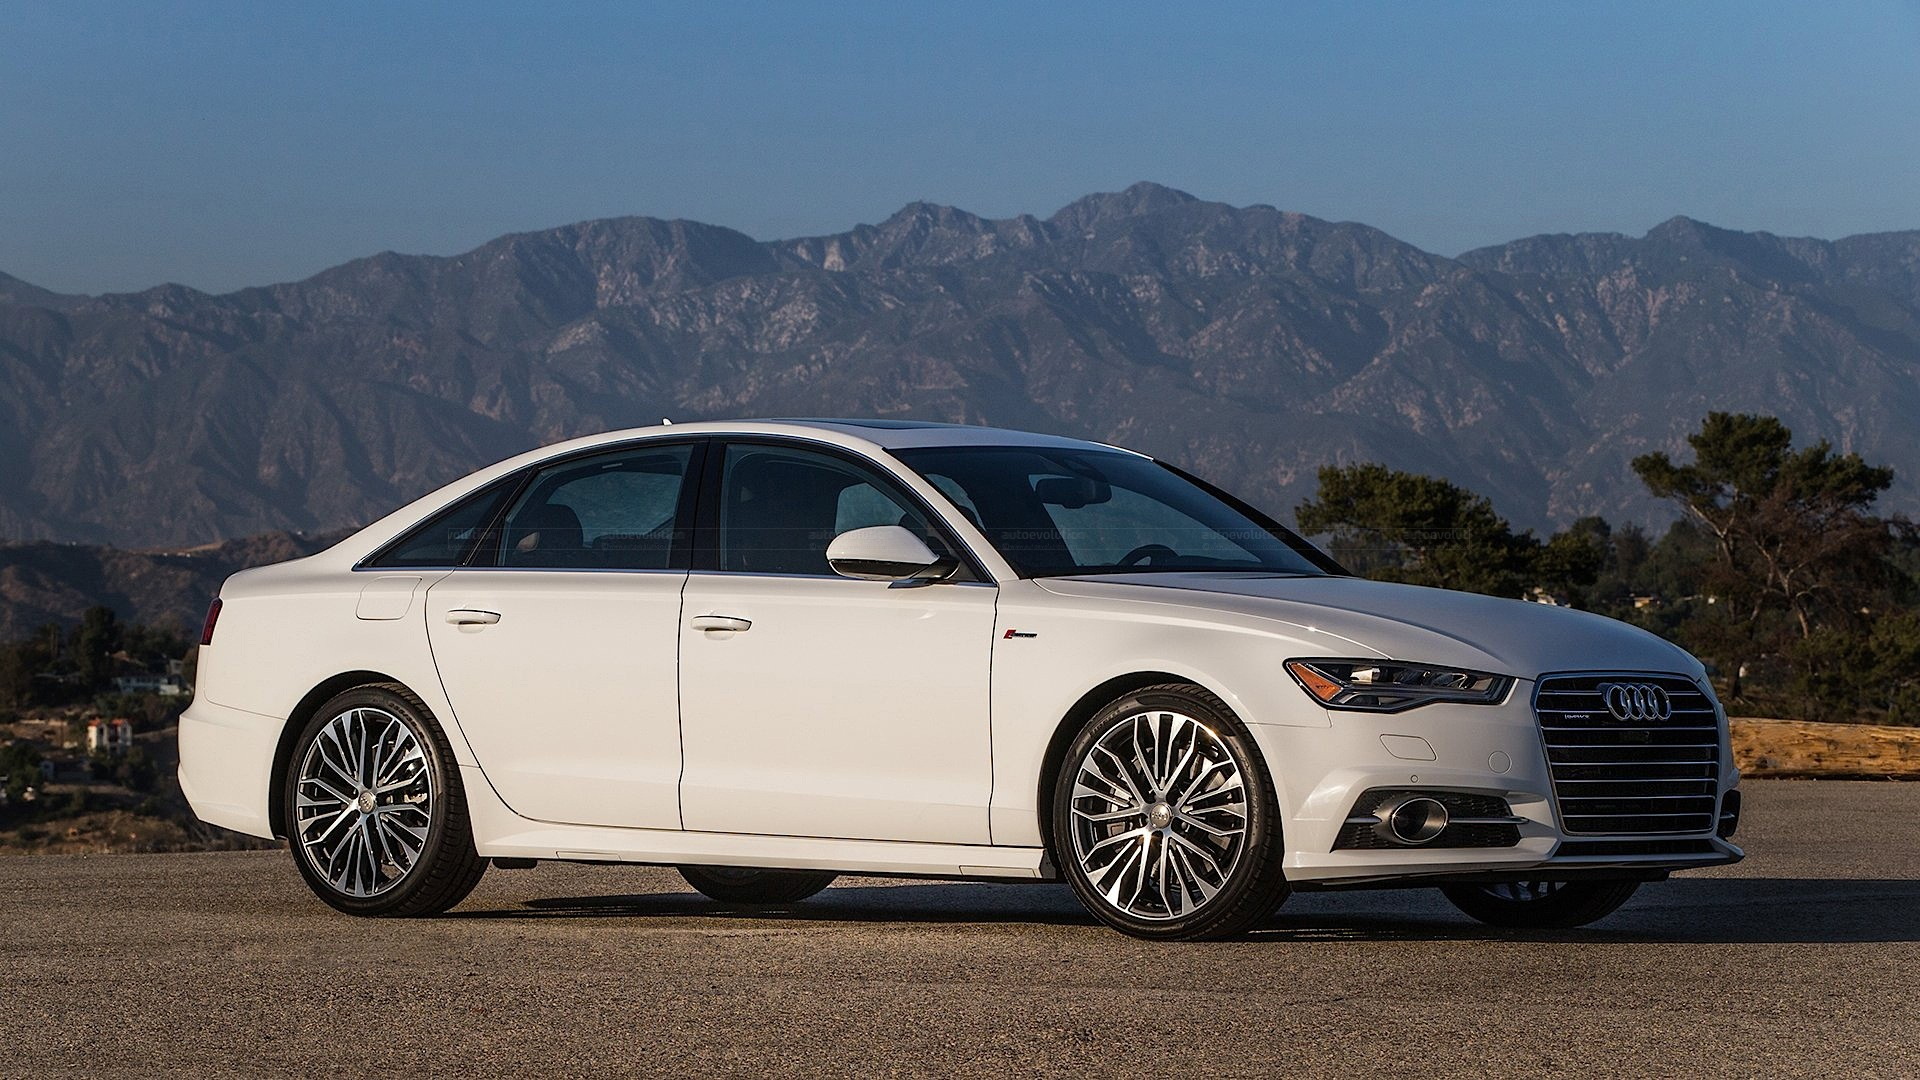 Sullivan Auto Group >> 2016 Audi A6 and A7 TFSI quattro Models Look Handsome in Latest US-spec Photo Gallery ...